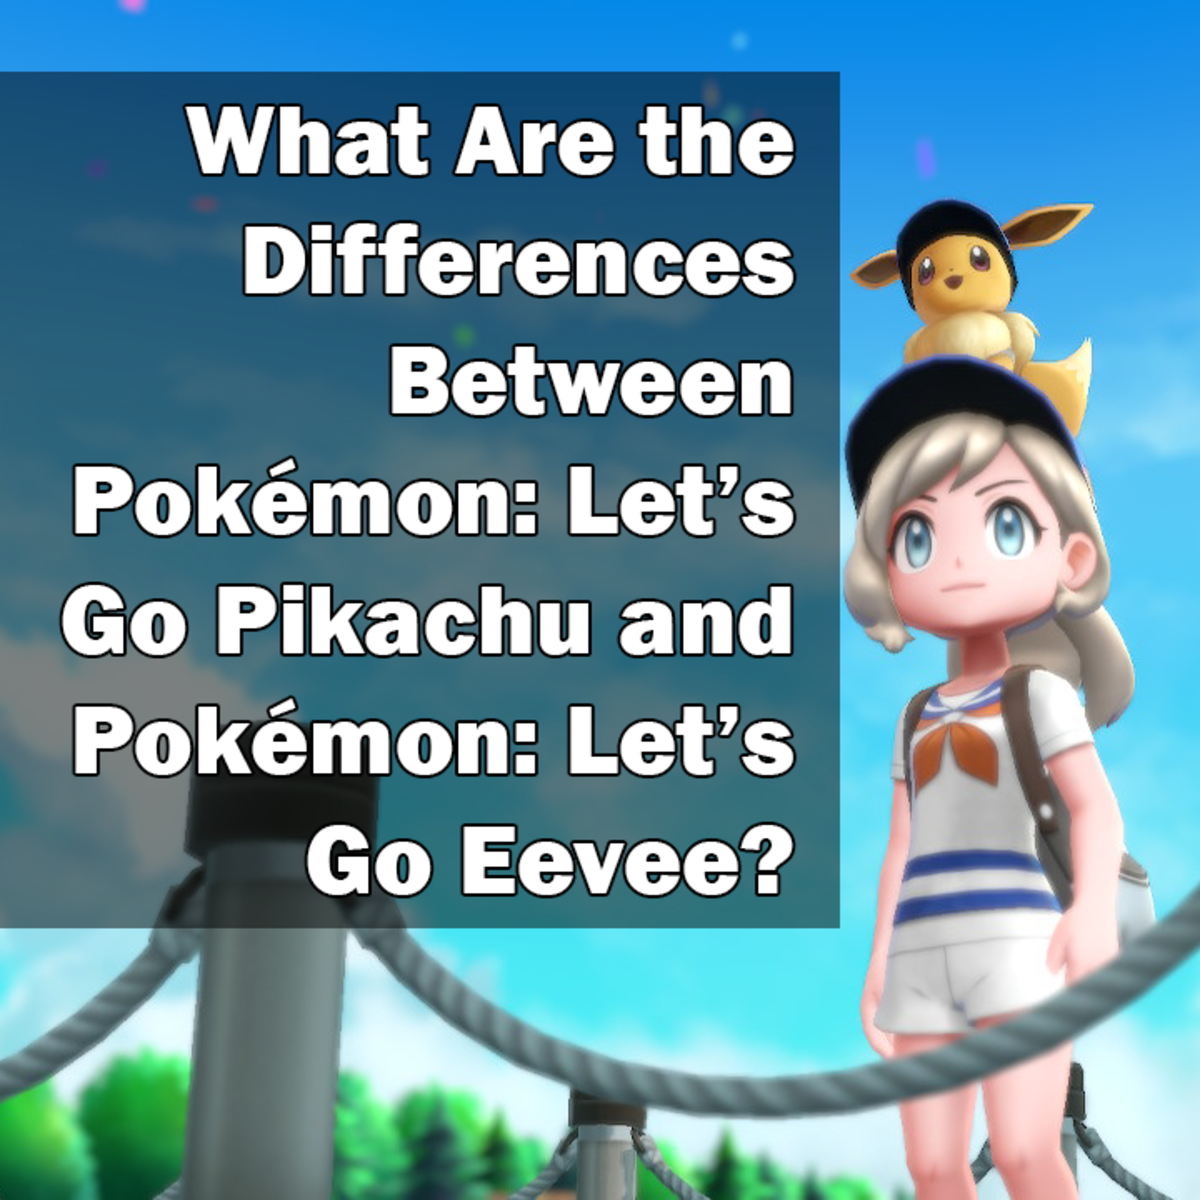 What Are the Differences Between Pokémon: Let's Go Pikachu and Pokémon: Let's Go Eevee?